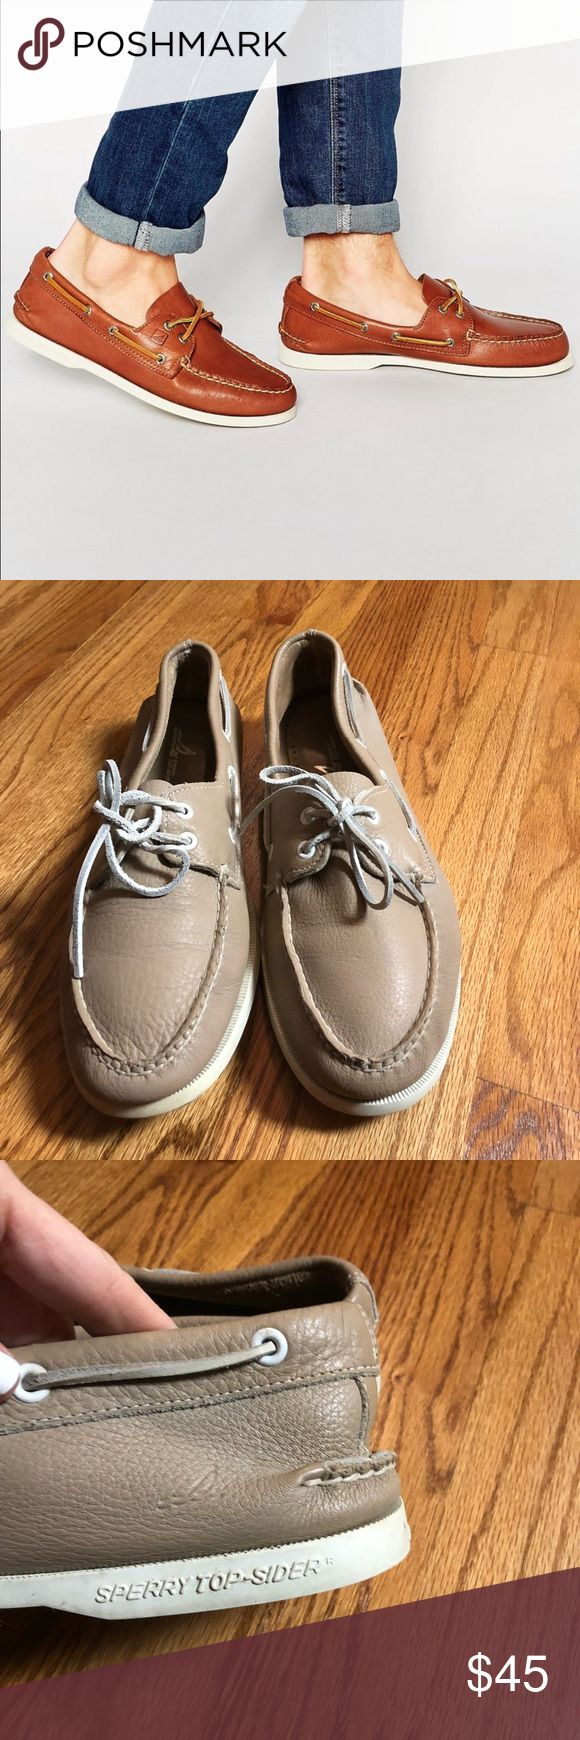 🔥sale🔥Sperry top-sider mens boat shoes Sperry top-sider men's leather slip ons buttery soft leather still great condition gently used Sperry Top-Sider Shoes Loafers & Slip-Ons